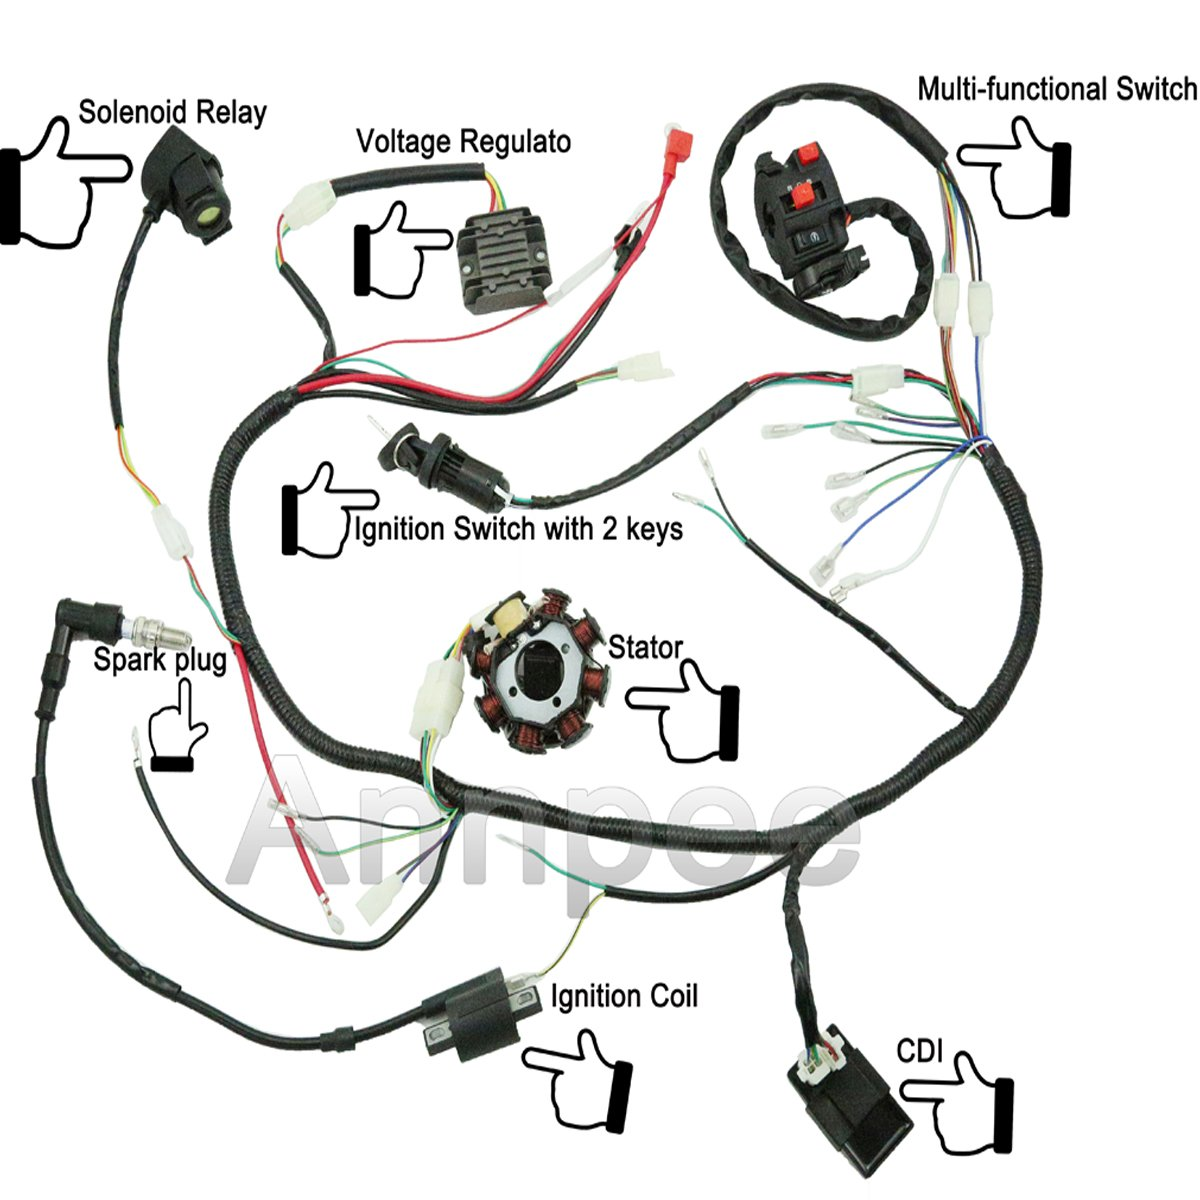 8 Wire Cdi Box Diagram | Wiring Diagram  Wire Cdi Chinese Atv Wiring Diagrams on